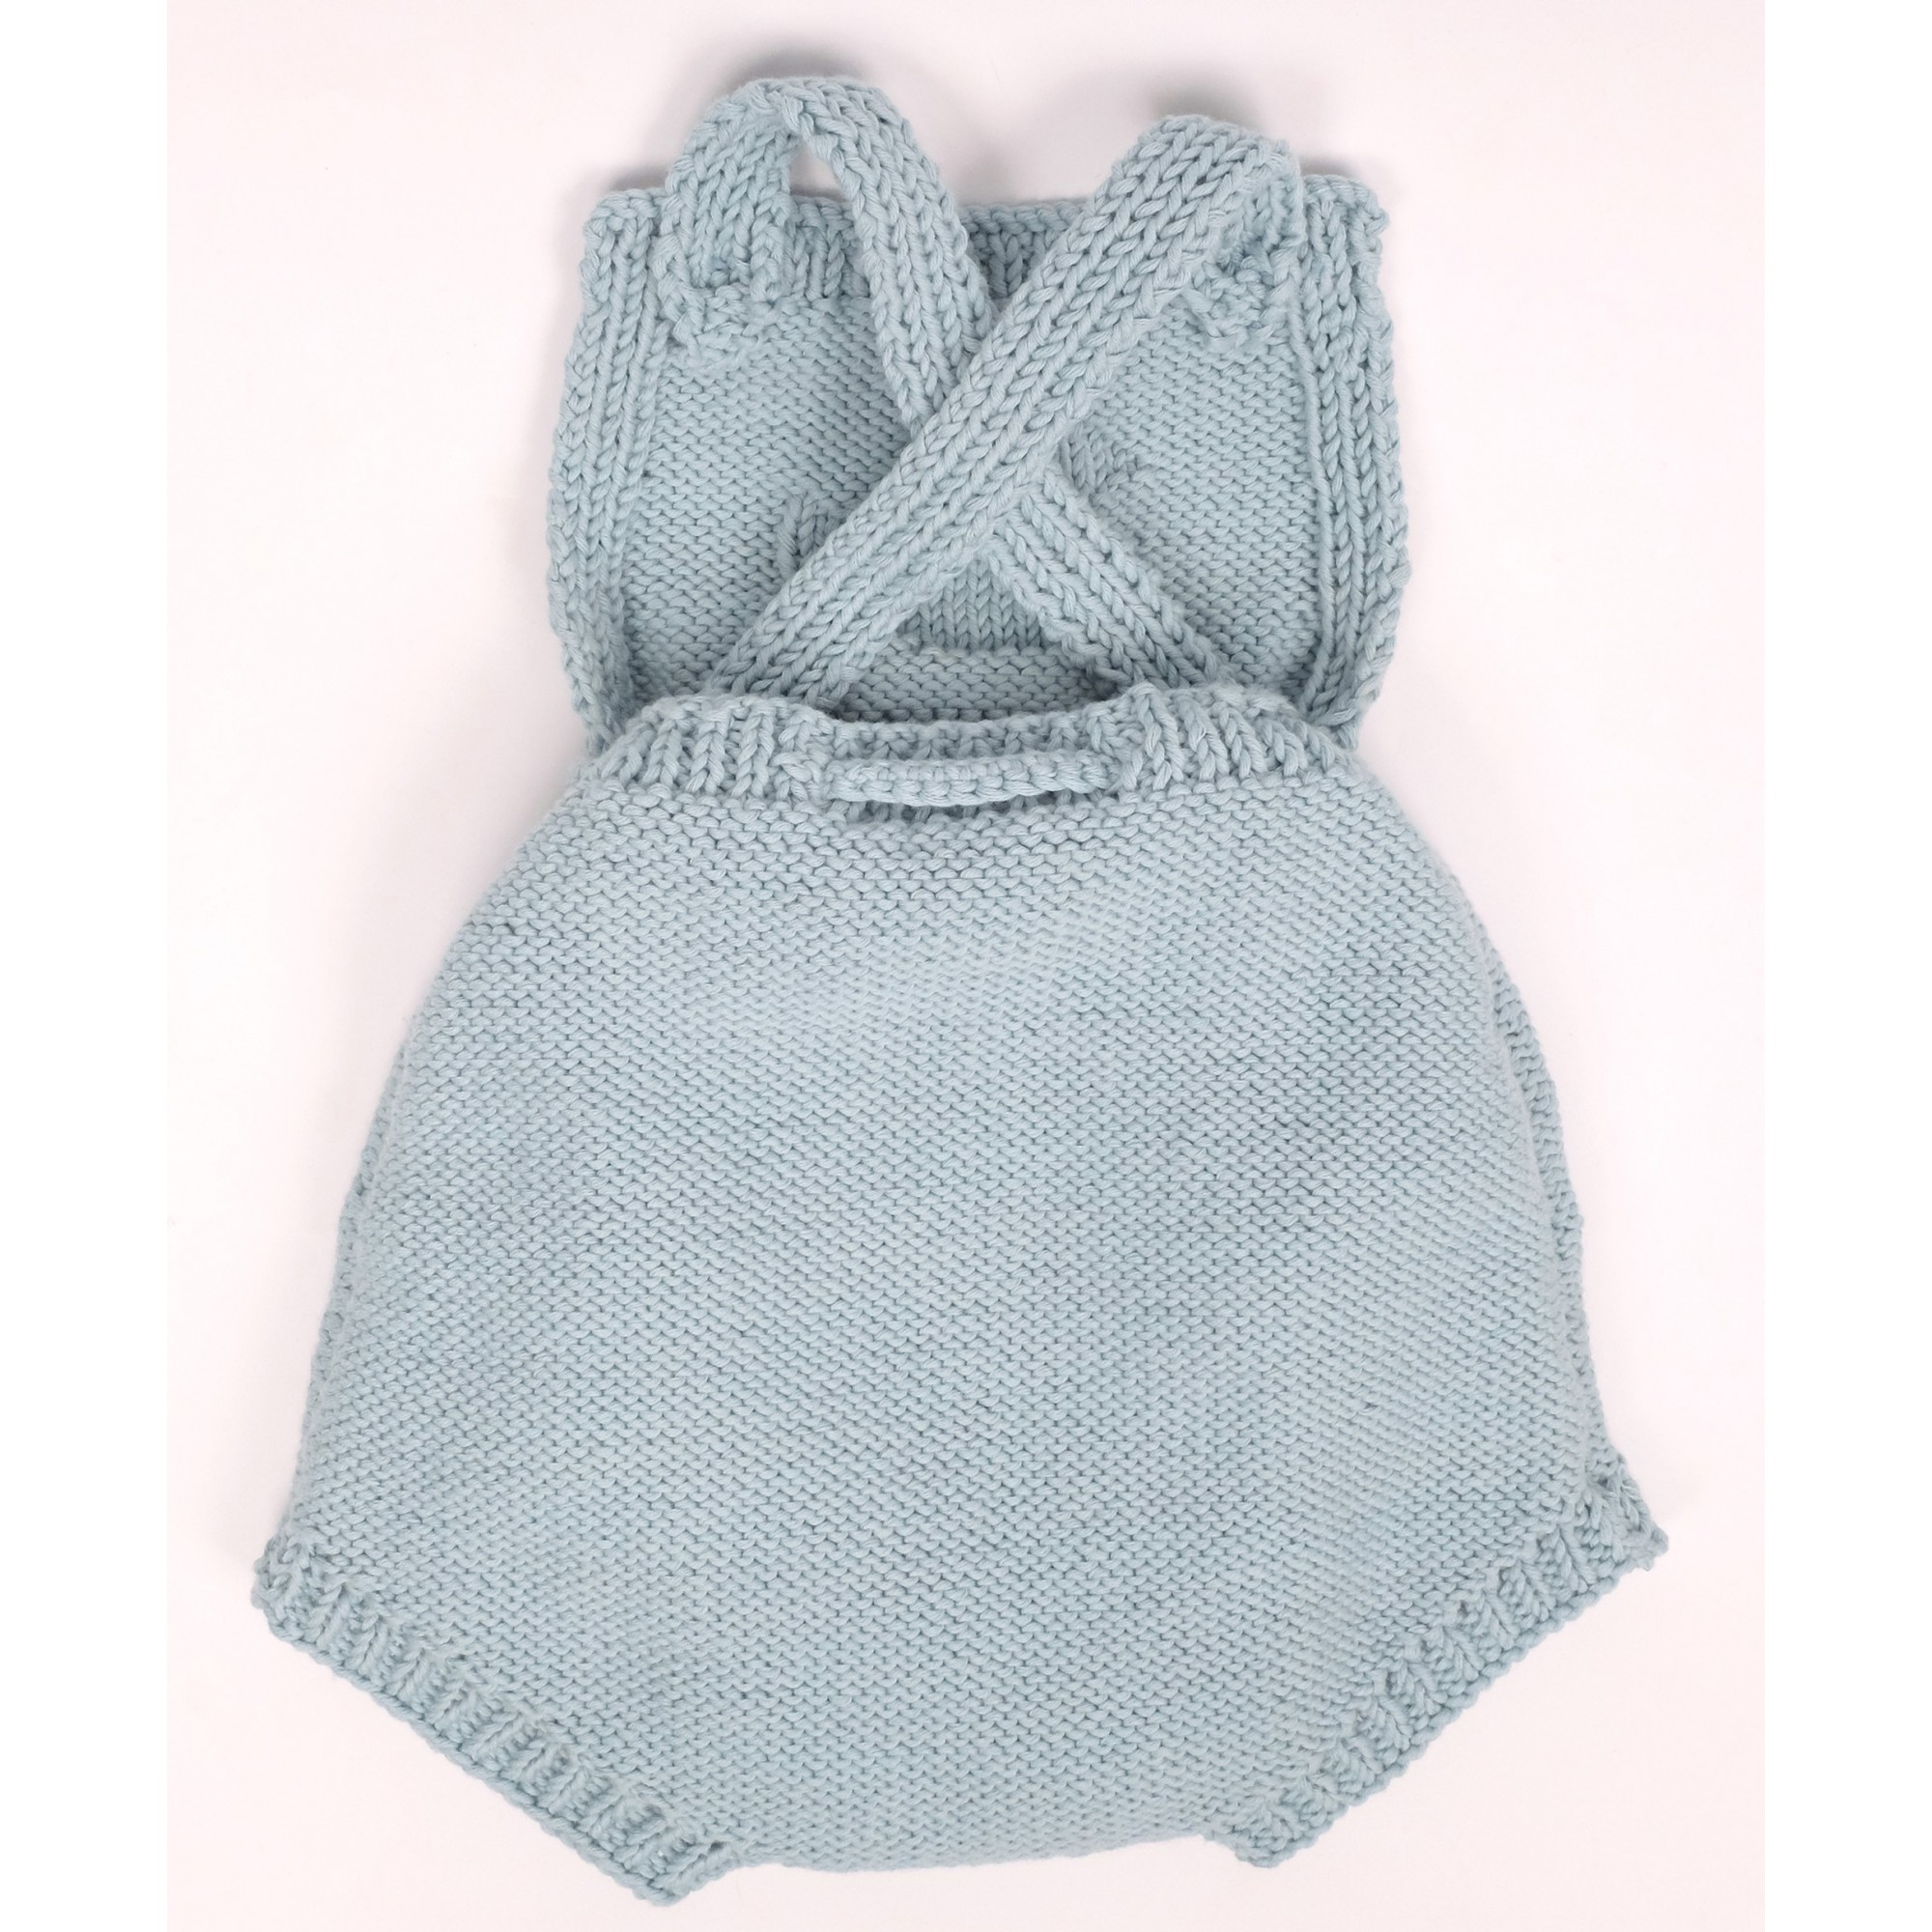 Félicie rompers for baby - sky blue color - The back